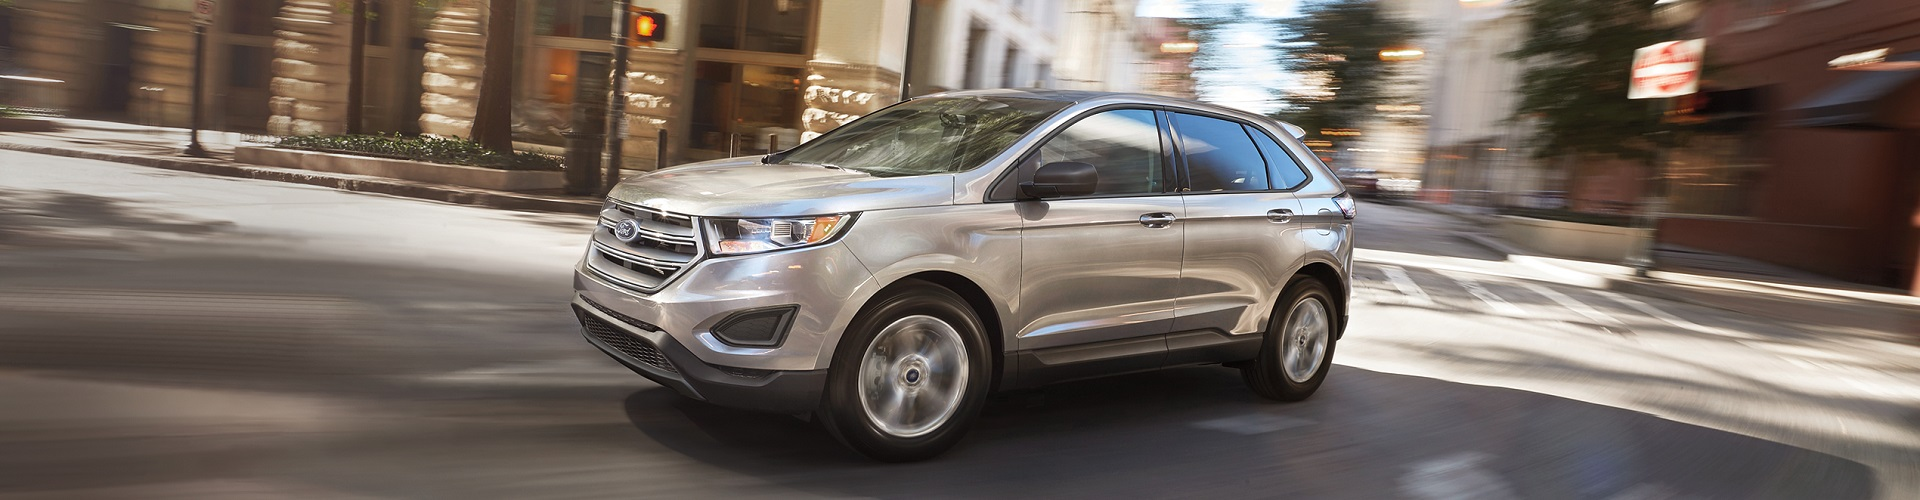 2018_Ford_Edge_City.jpg